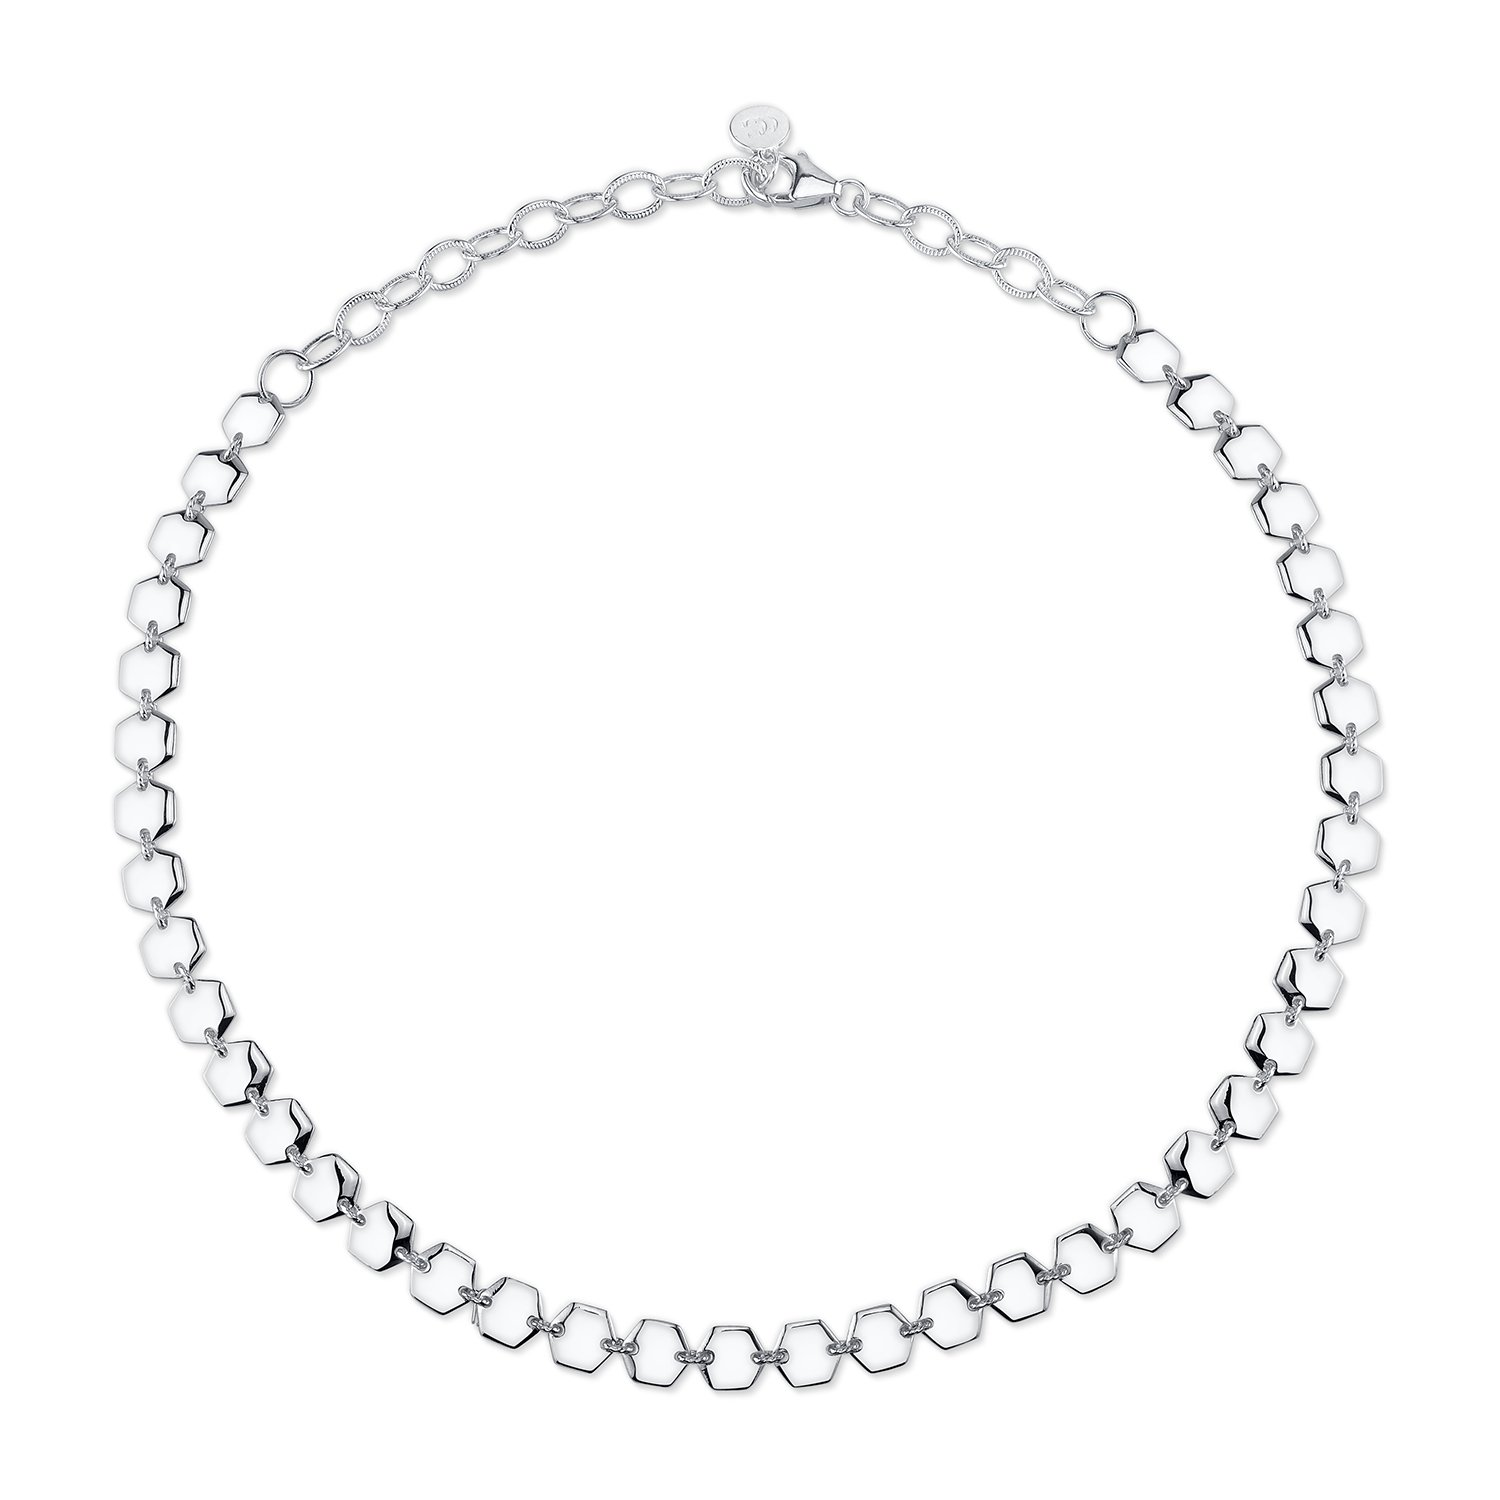 CHARLIZE GADBOIS 925 Sterling Silver Hexagon Choker Necklace, White Rhodium, 14''